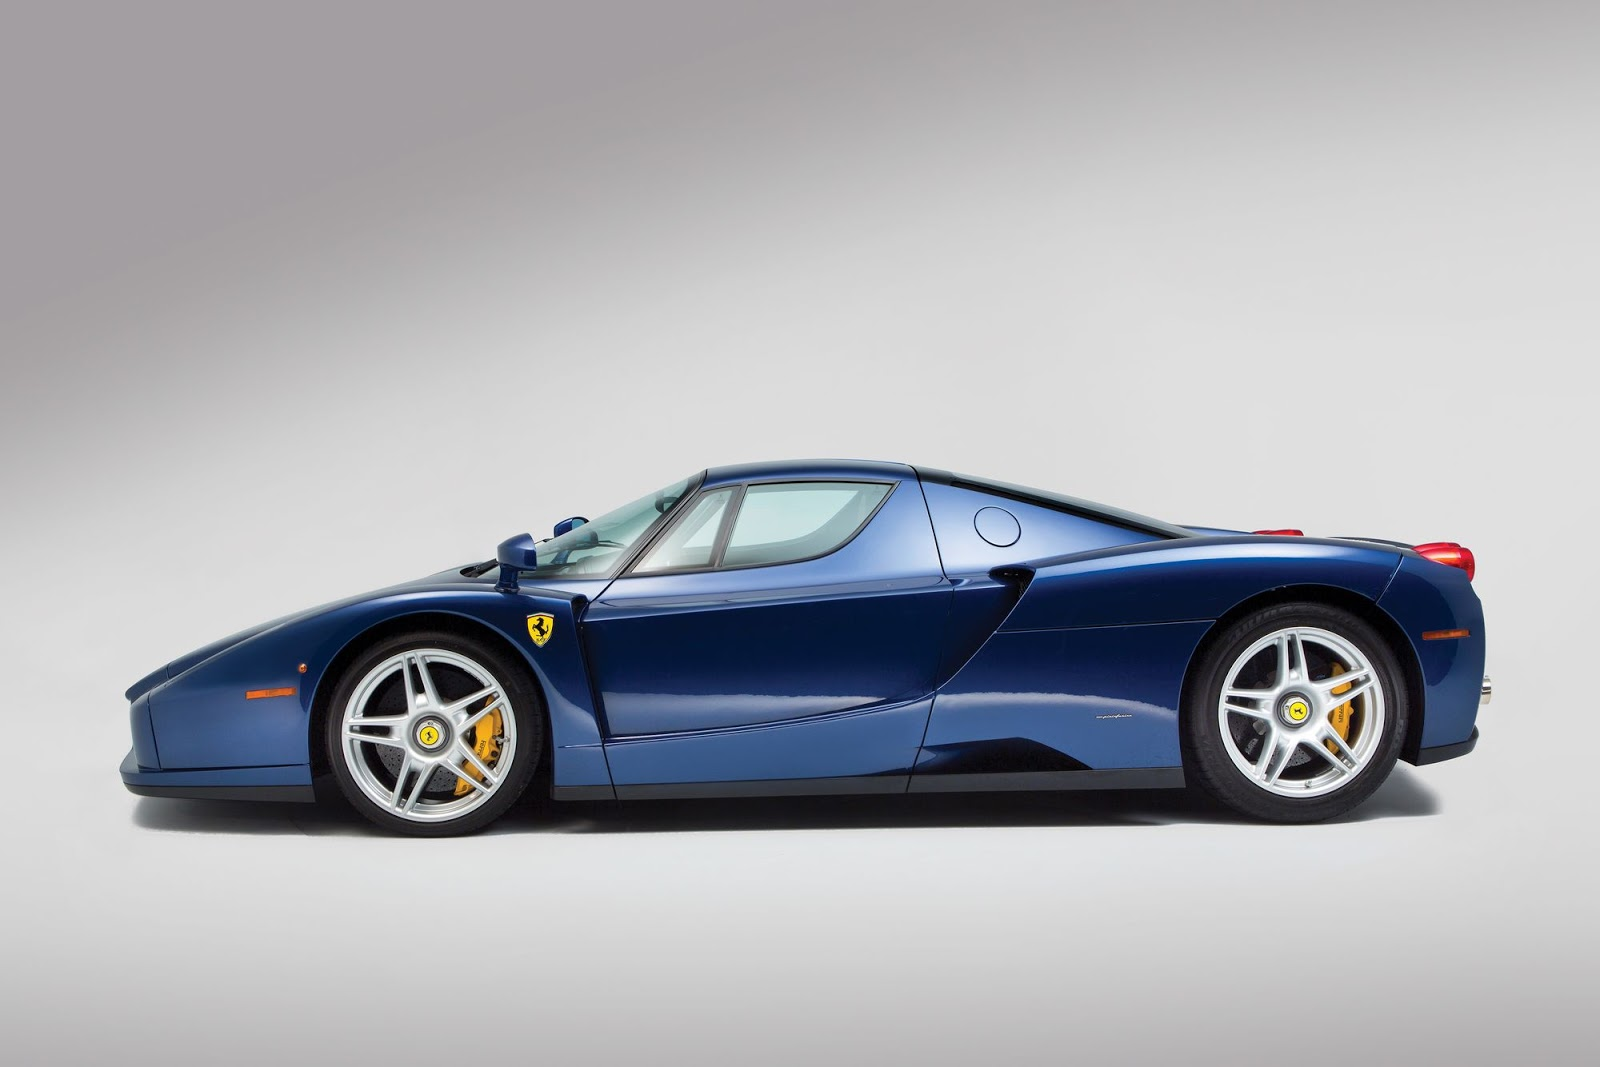 Blue Ferrari Enzo in auction (8)